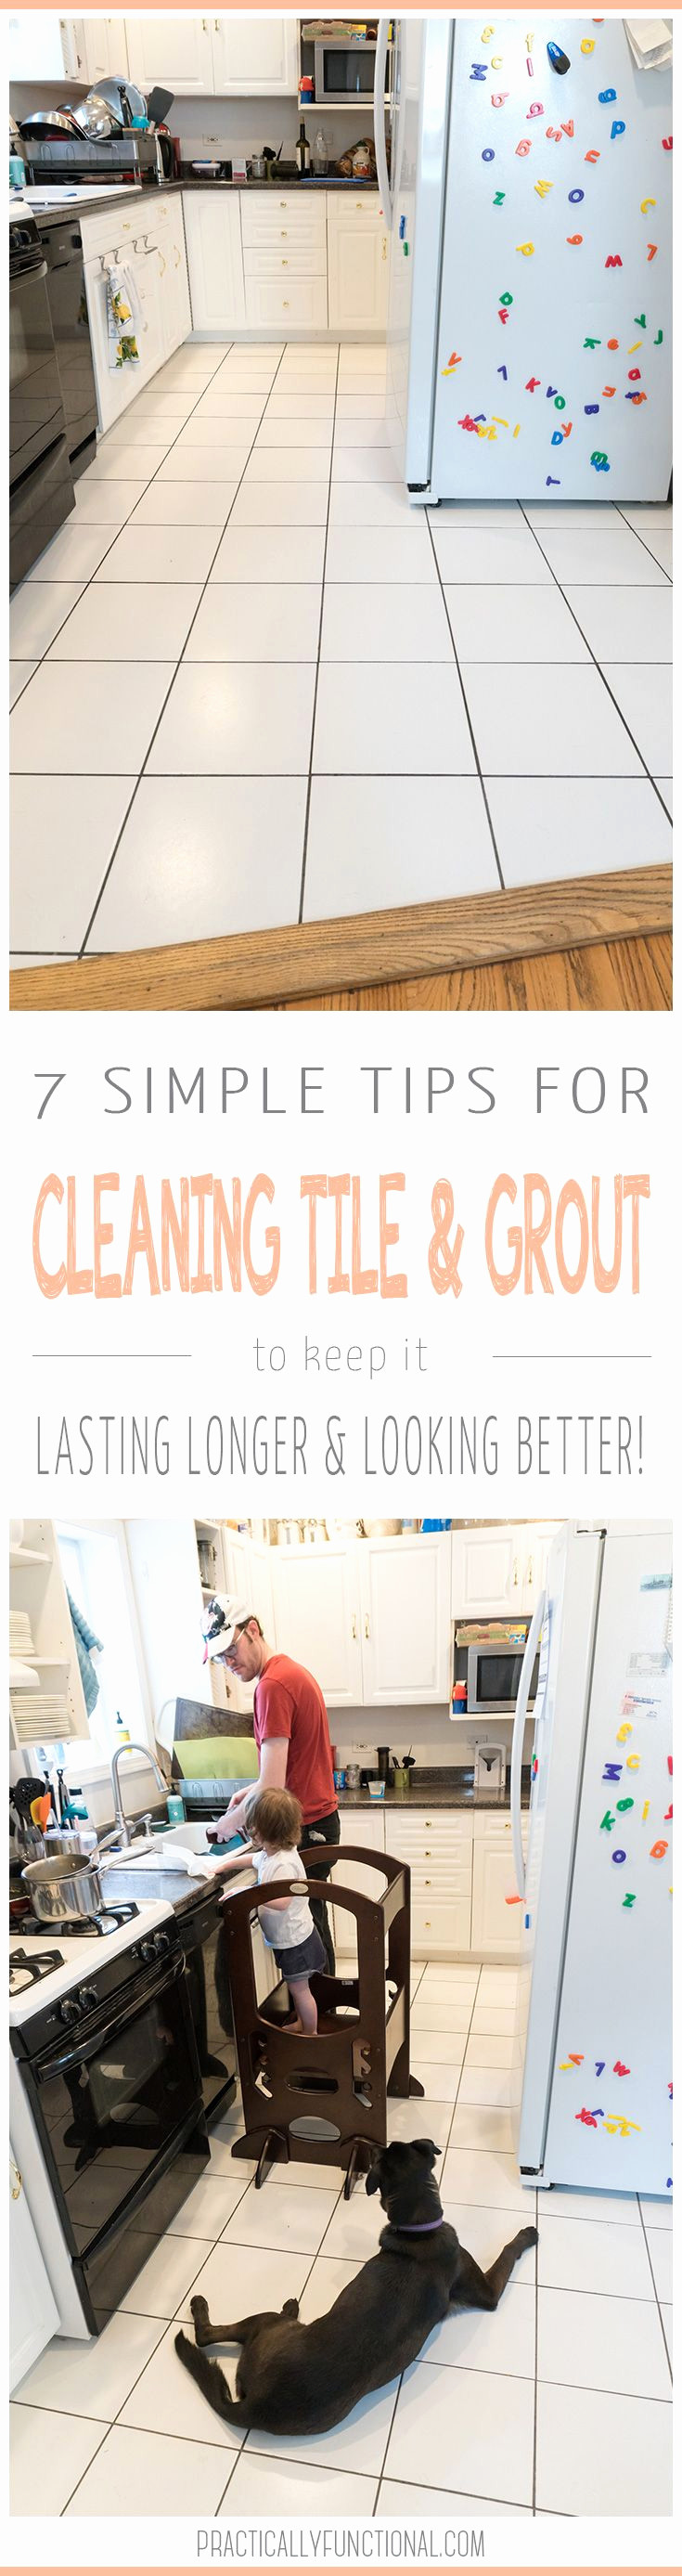 cleaning prefinished hardwood floors with vinegar of cleaning tile floors with vinegar 50 lovely how to clean tile floors for cleaning tile floors with vinegar 50 lovely how to clean tile floors with vinegar and baking